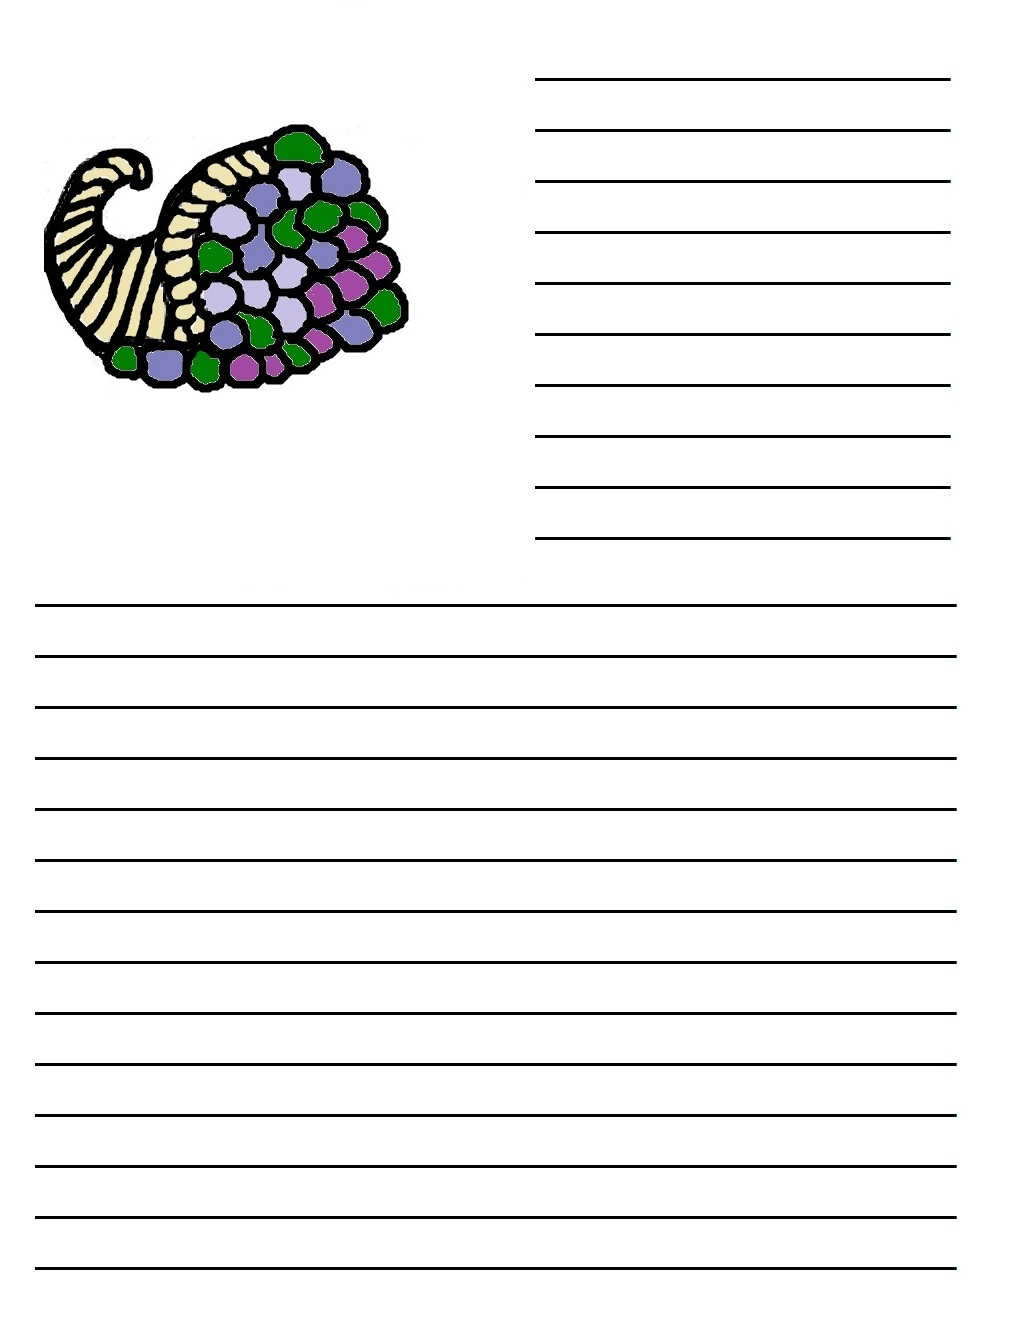 thanksgiving writing paper printable Free printable stationery including beautiful writing paper, to-do lists, reminder notes, phone message pads as well as shopping and grocery lists.